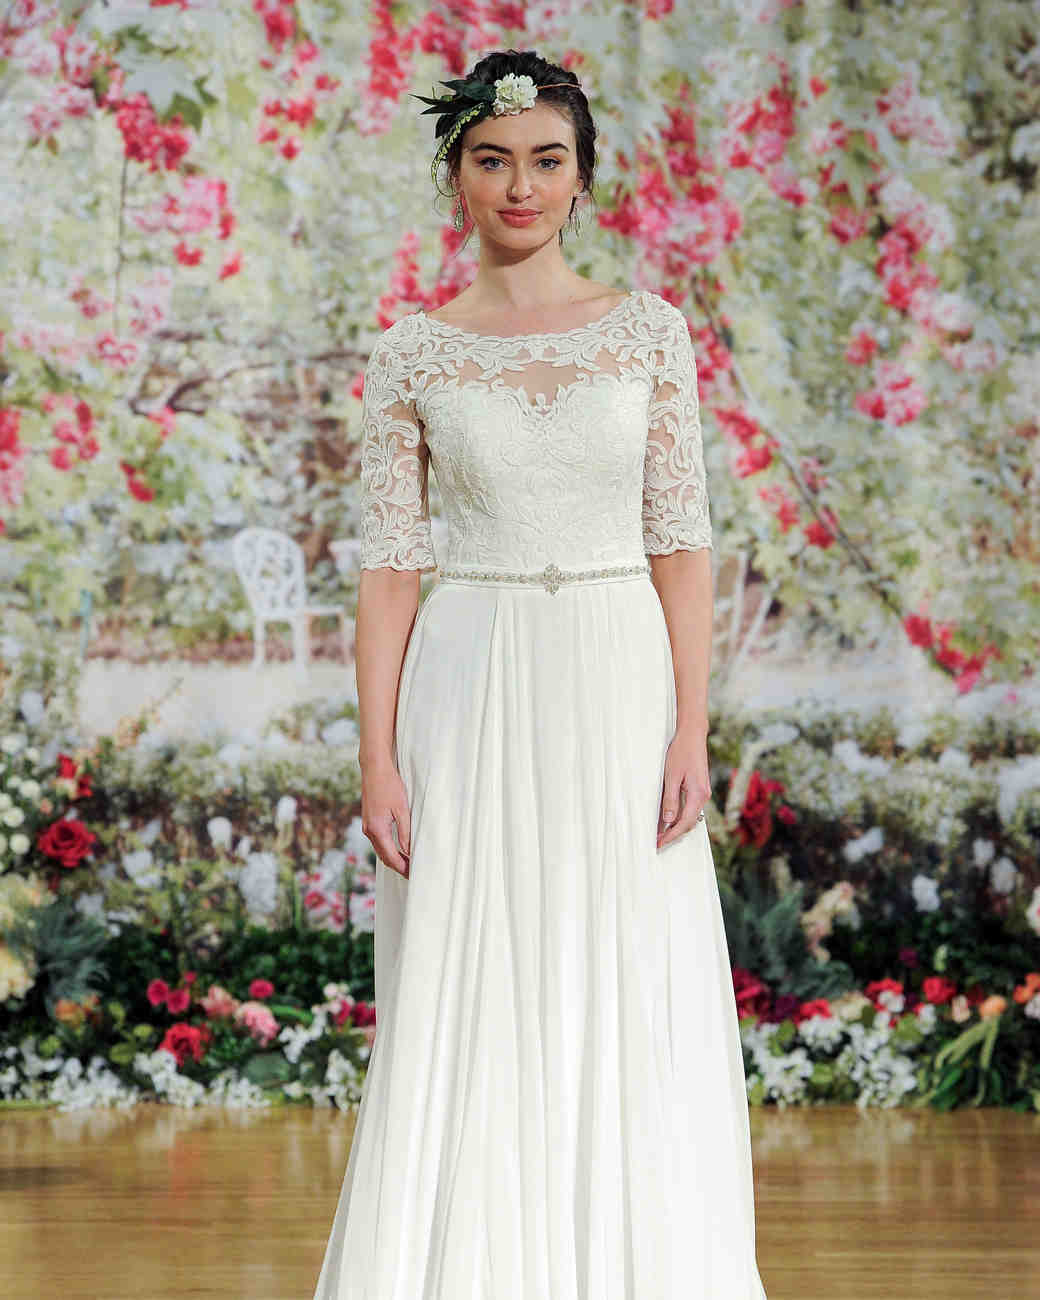 Maggie Sottero Fall 2017 Wedding Dress with Lace Top and Belt